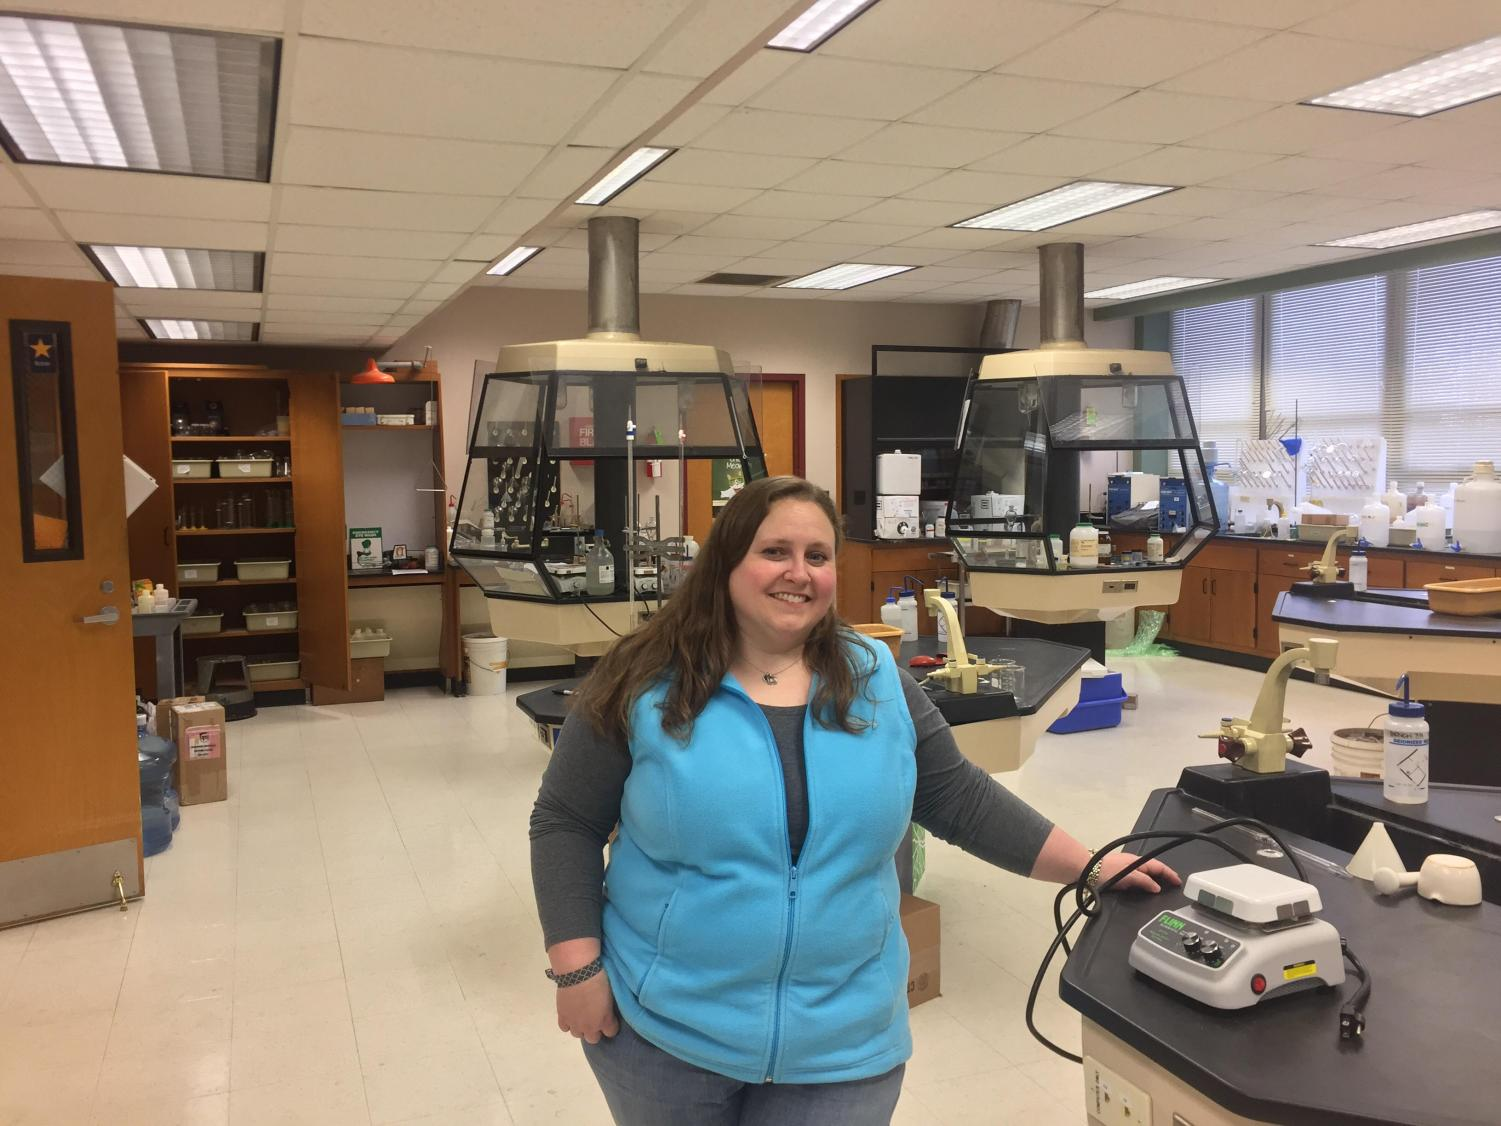 Dr. Morgan in her science lab that she utilizes during AP Chem, Analytical Chem, and other classes.